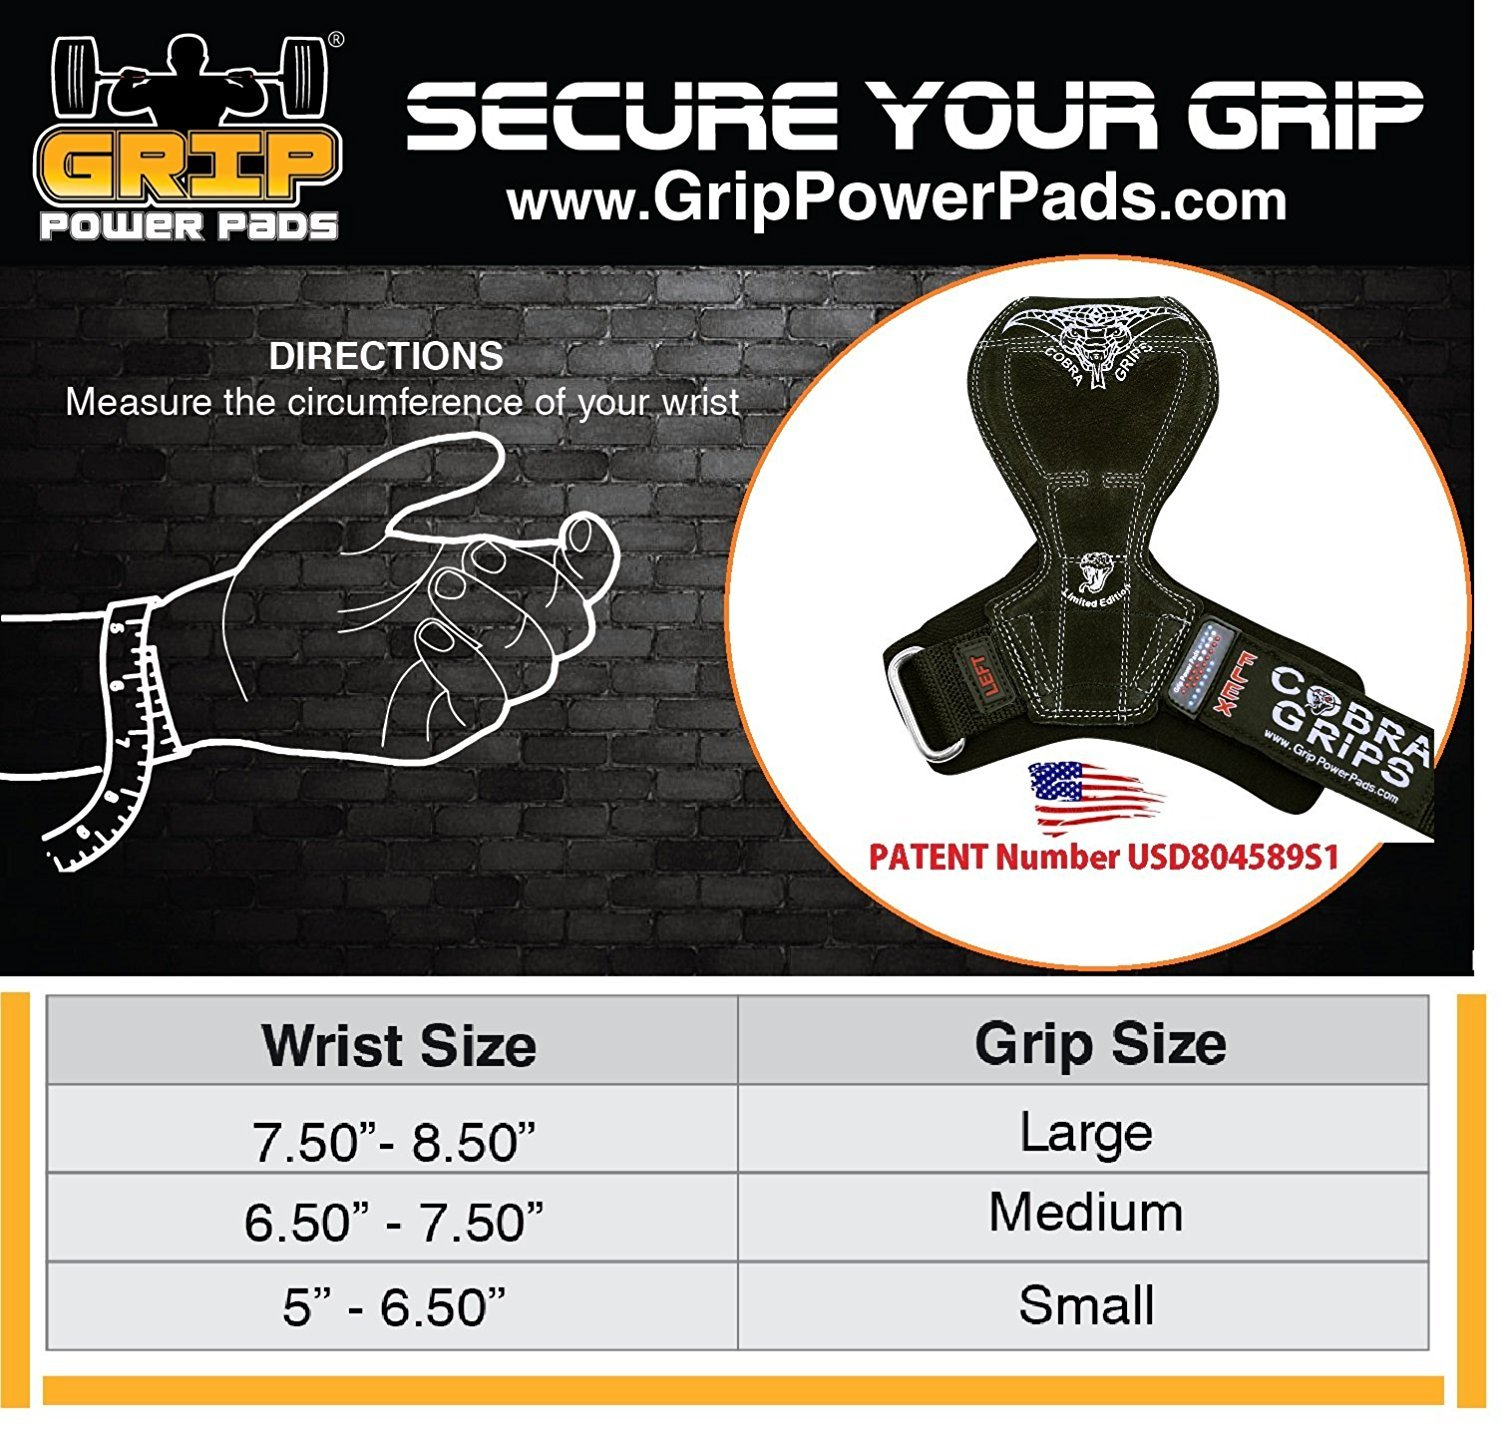 2018 Cobra Grips Flex Model Weight Lifting Gloves Heavy Duty Straps Alternative Power Lifting Hooks Best for Deadlifts with Padded Wrist Wrap Support Bodybuilding (Small, Black Leather) by Grip Power Pads (Image #3)